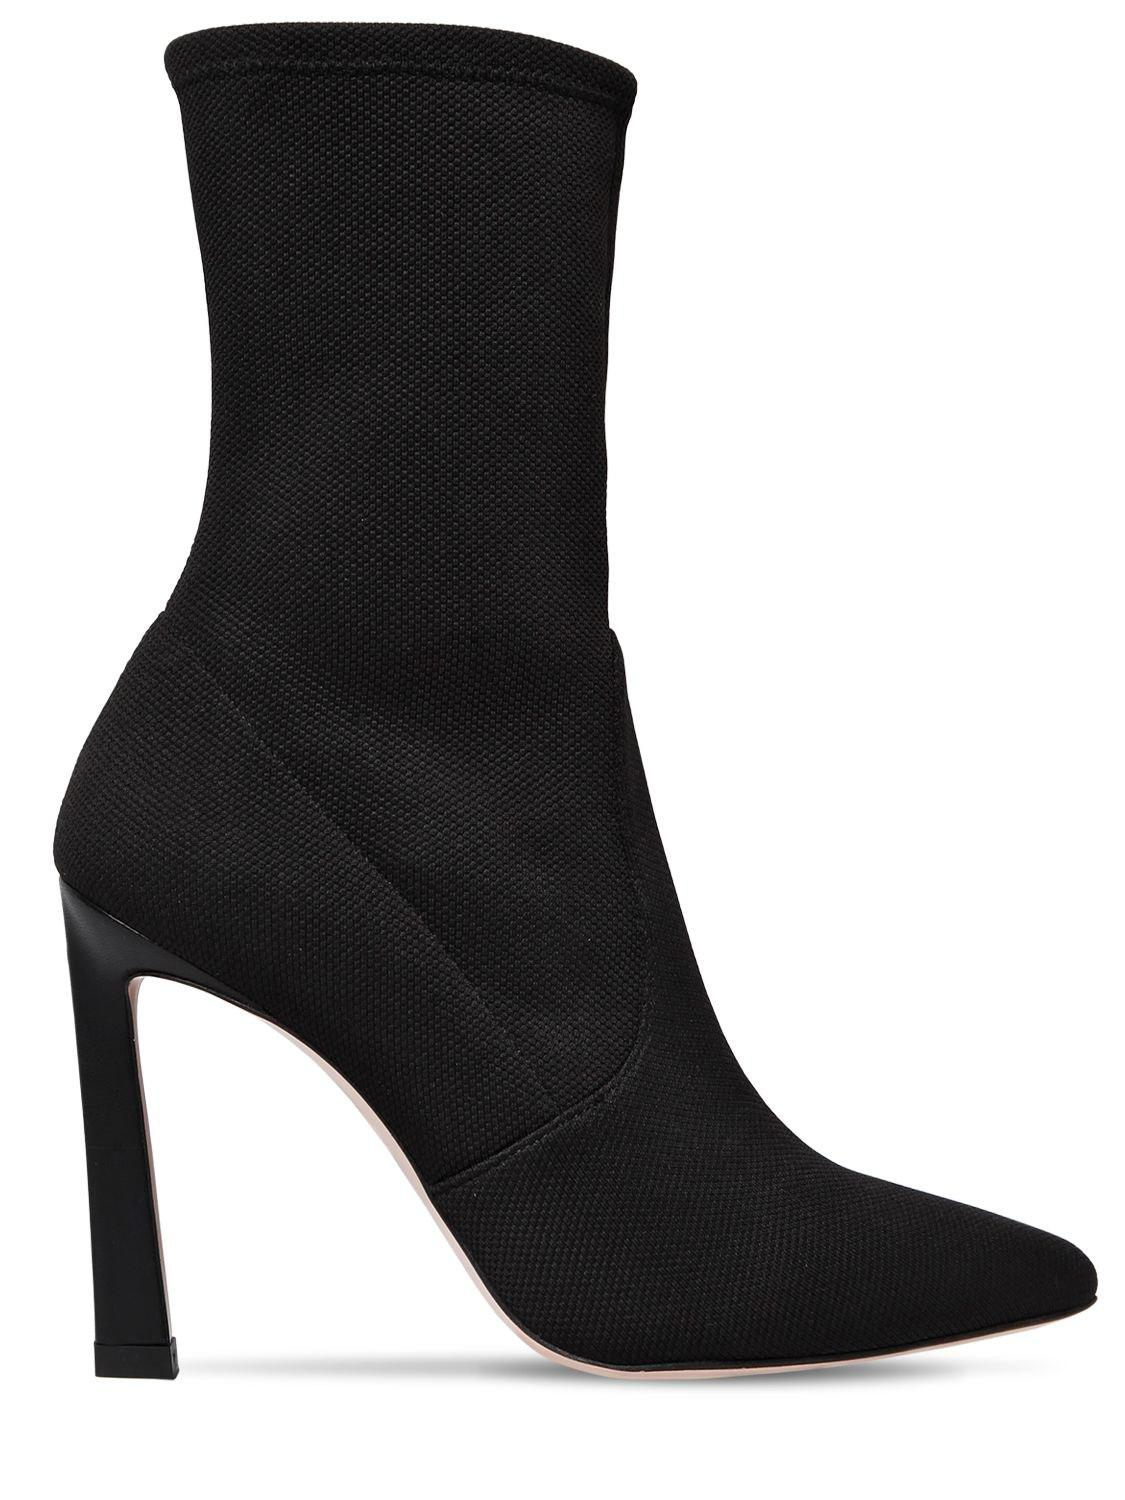 timeless design 45356 dad57 stuart-weitzman-BLACK-100mm-Rapture-Knit-Sock-Ankle-Boots.jpeg